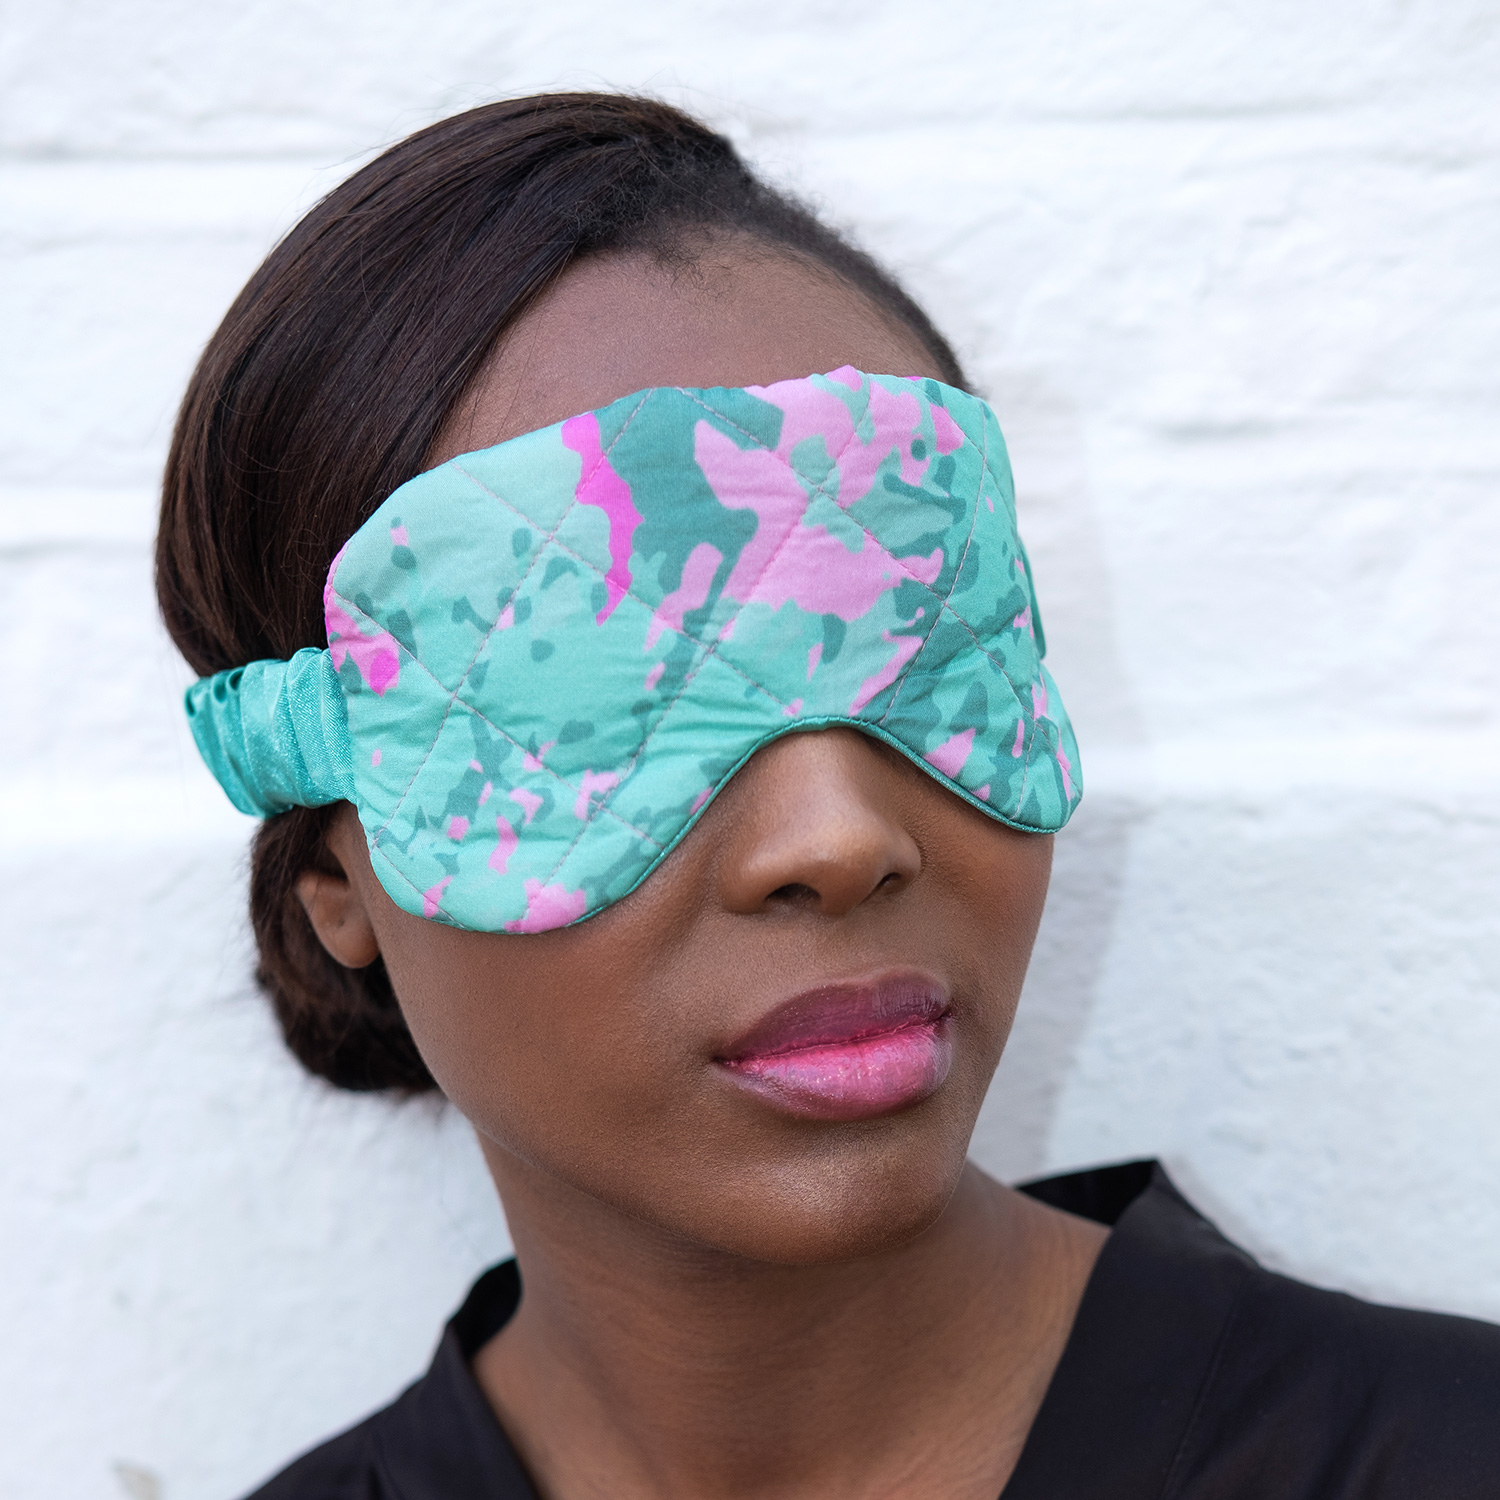 Sleep masks